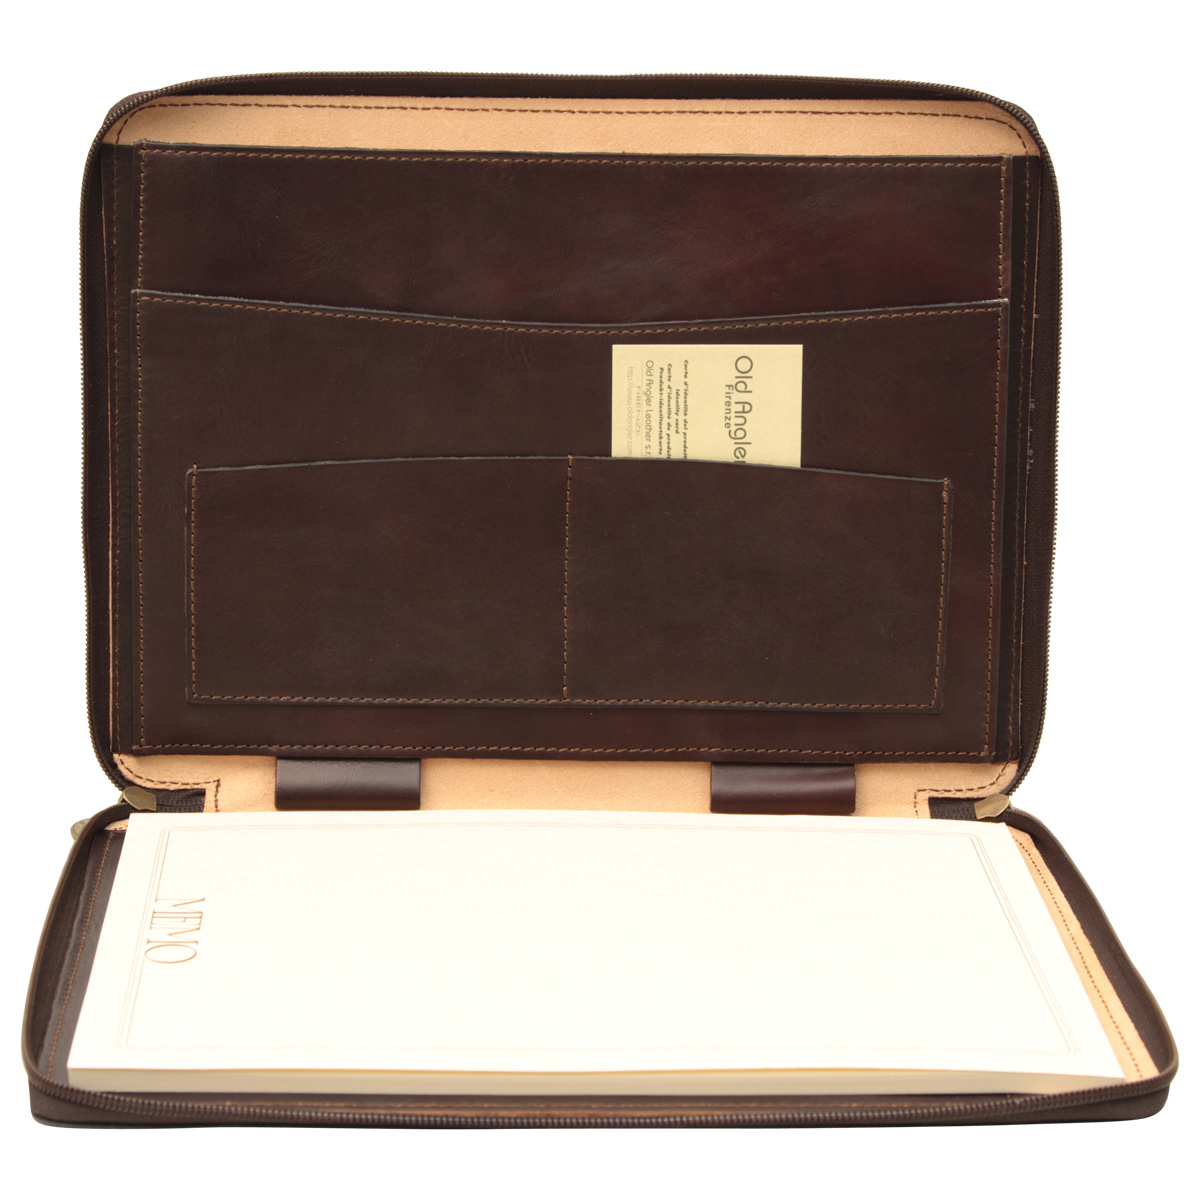 Cowhide leather portfolio - Dark Brown | 059489TM UK | Old Angler Firenze